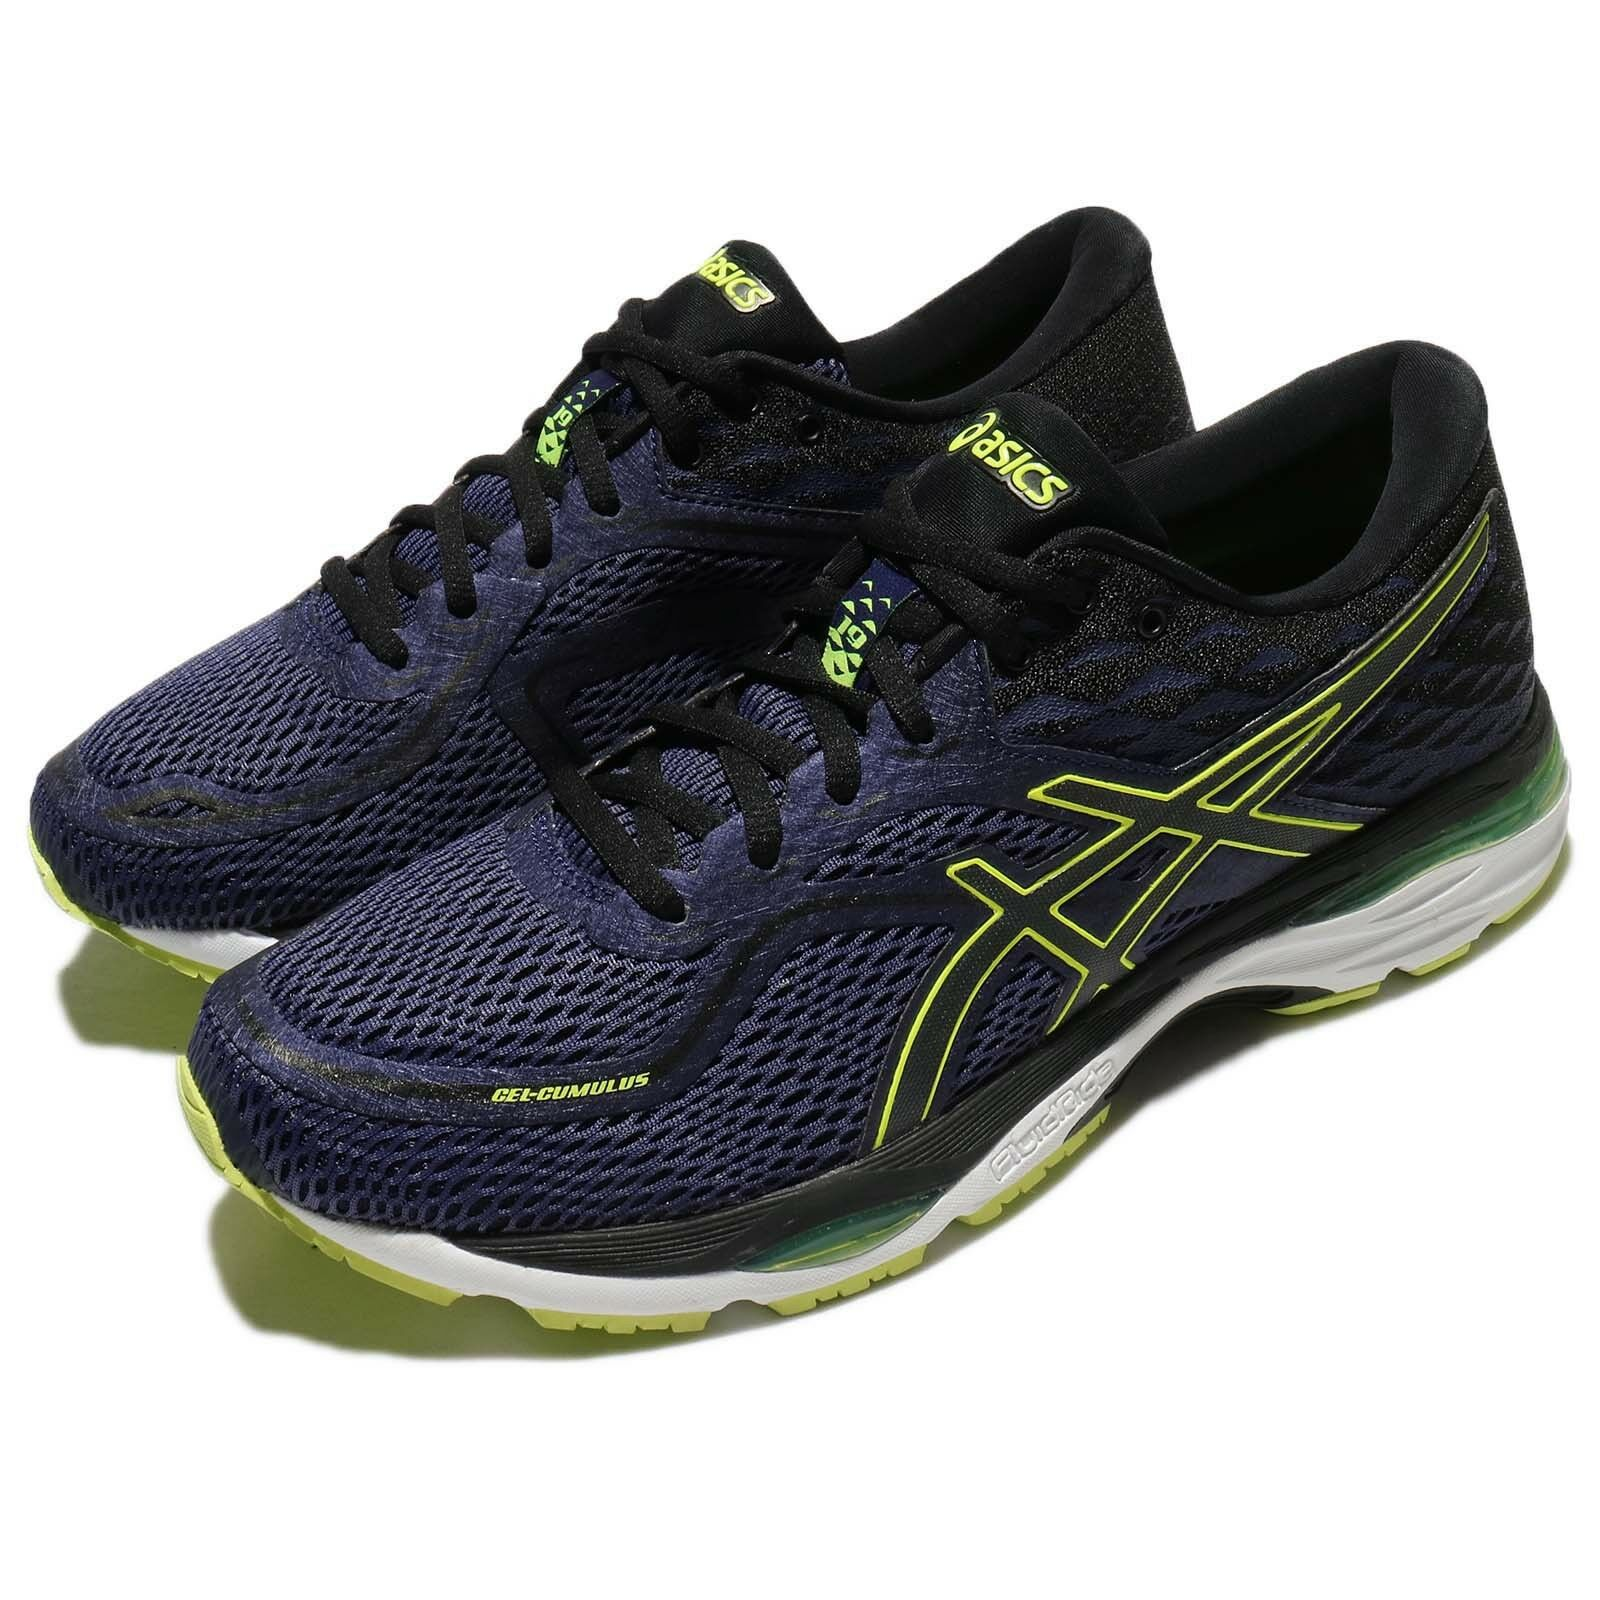 Asics Gel-Cumulus 19 blueee Safety Yellow Men Running shoes Trainers T7B3N-4990